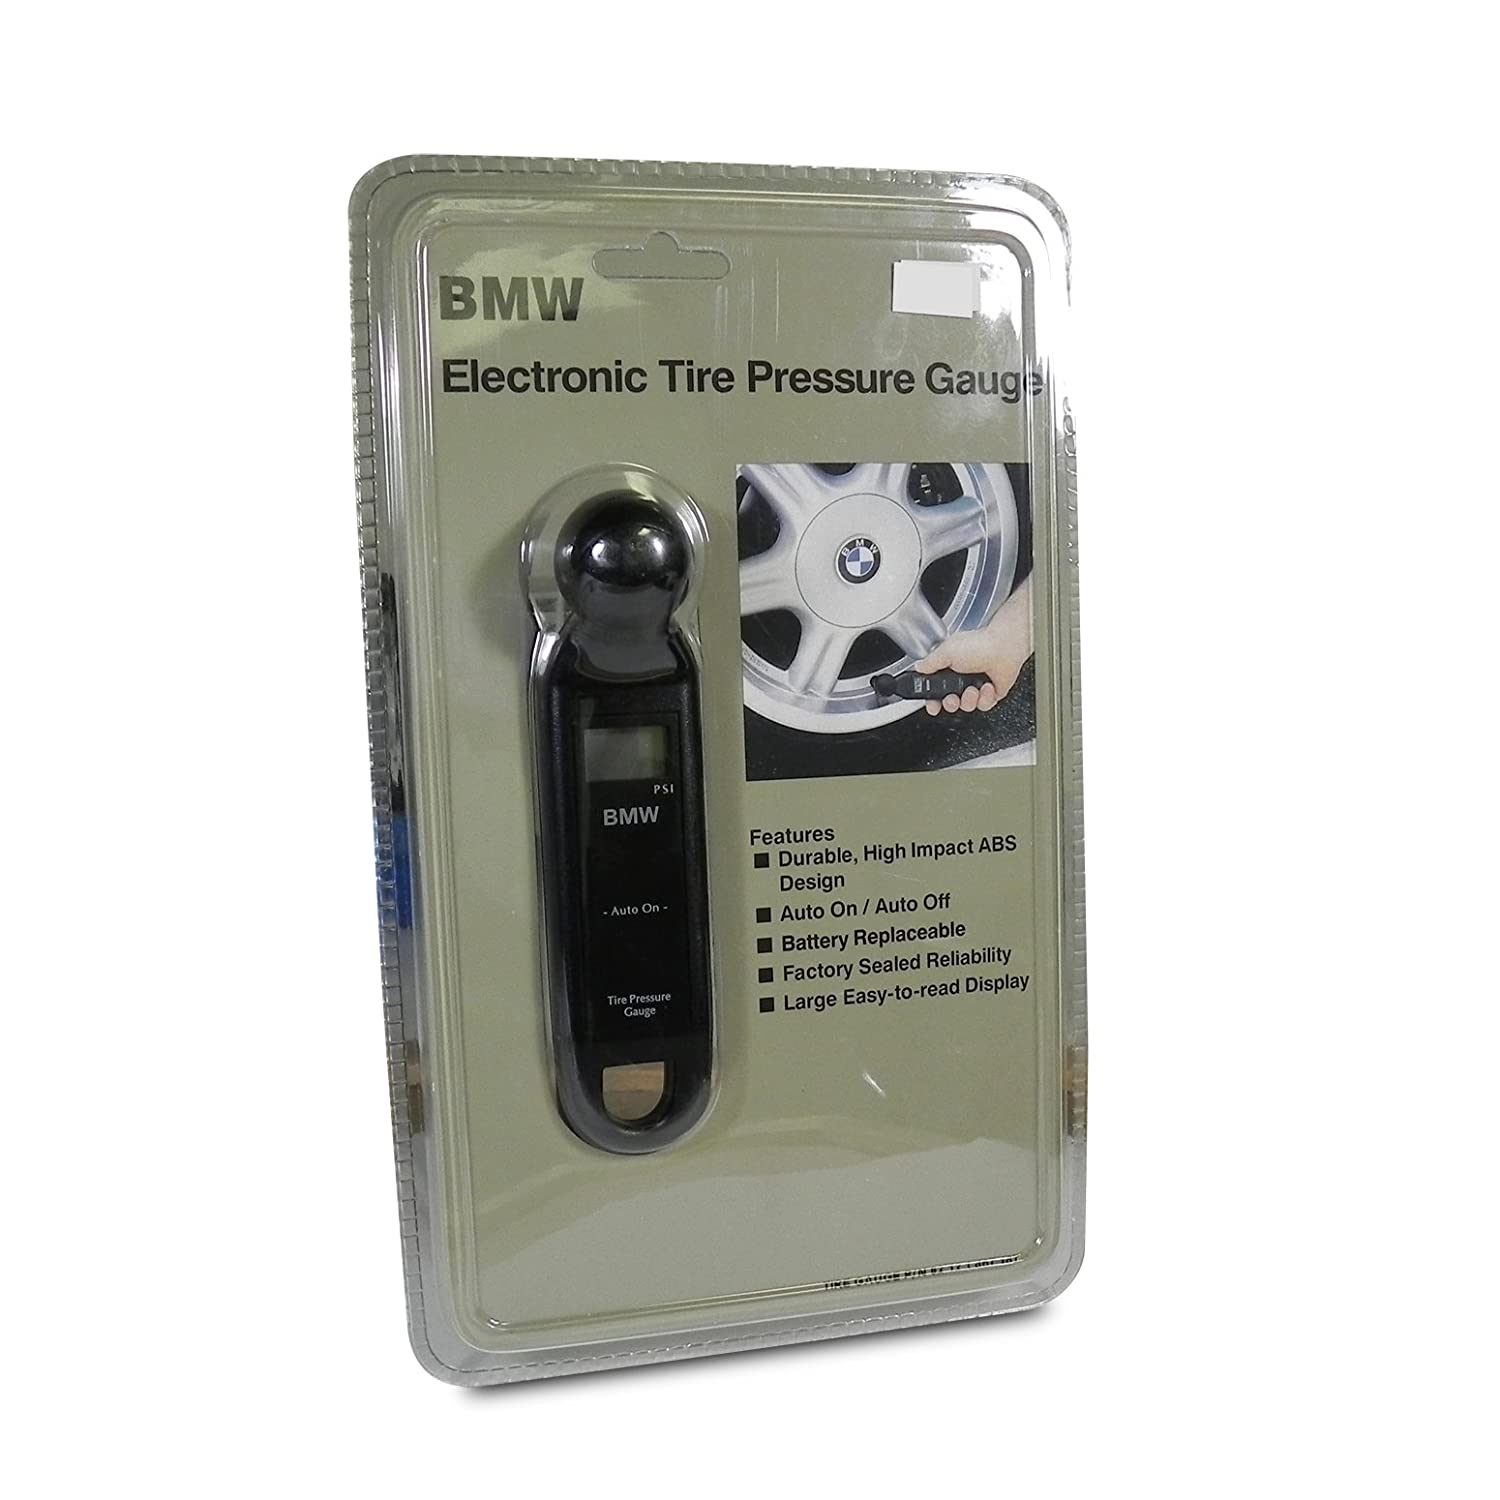 Bmw Electronic Tire Pressure Gauge : Disappointed bmw electronic tire pressure gauge